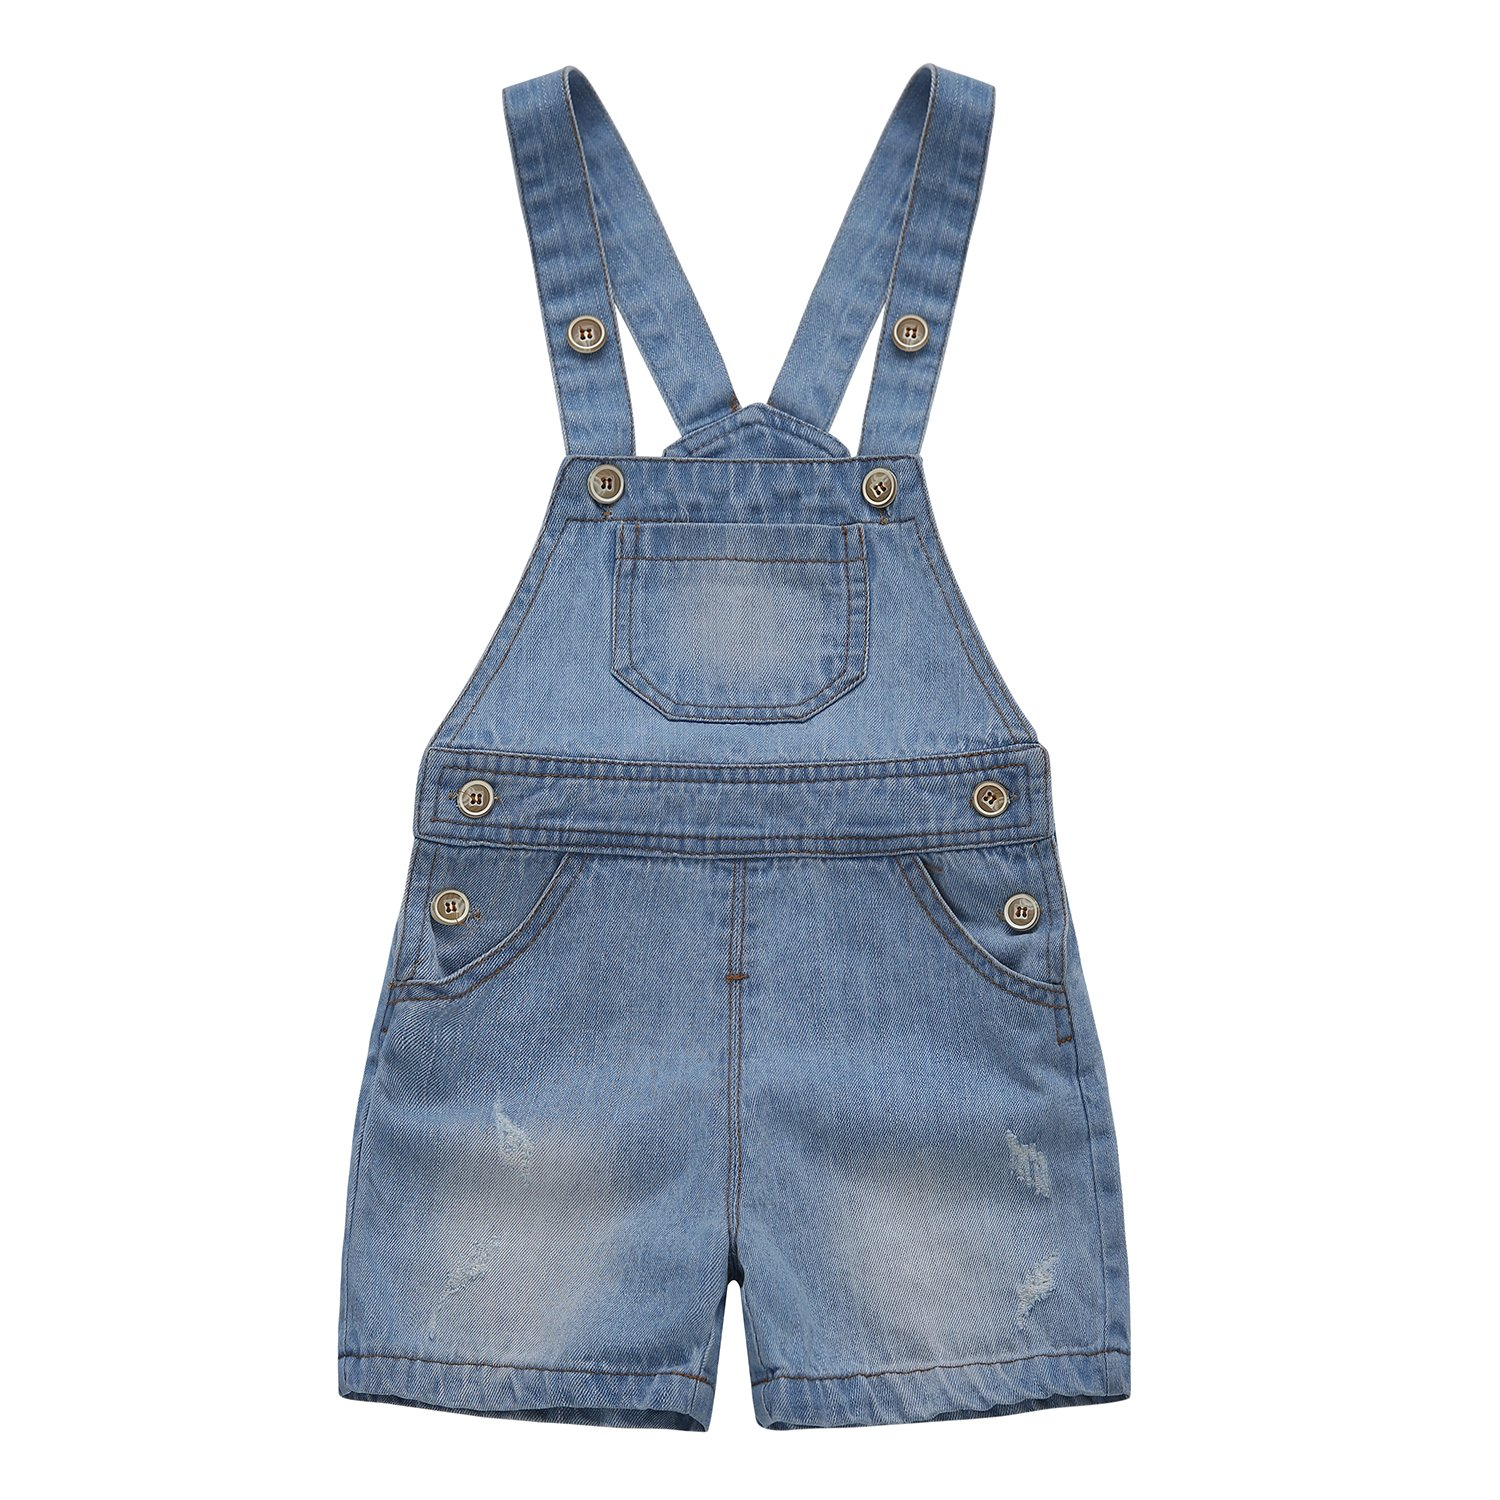 Kidscool Baby & Toddler Girls/Boys Big Bibs Ripped Summer Jeans Shortalls,Light Blue,4-5 Years